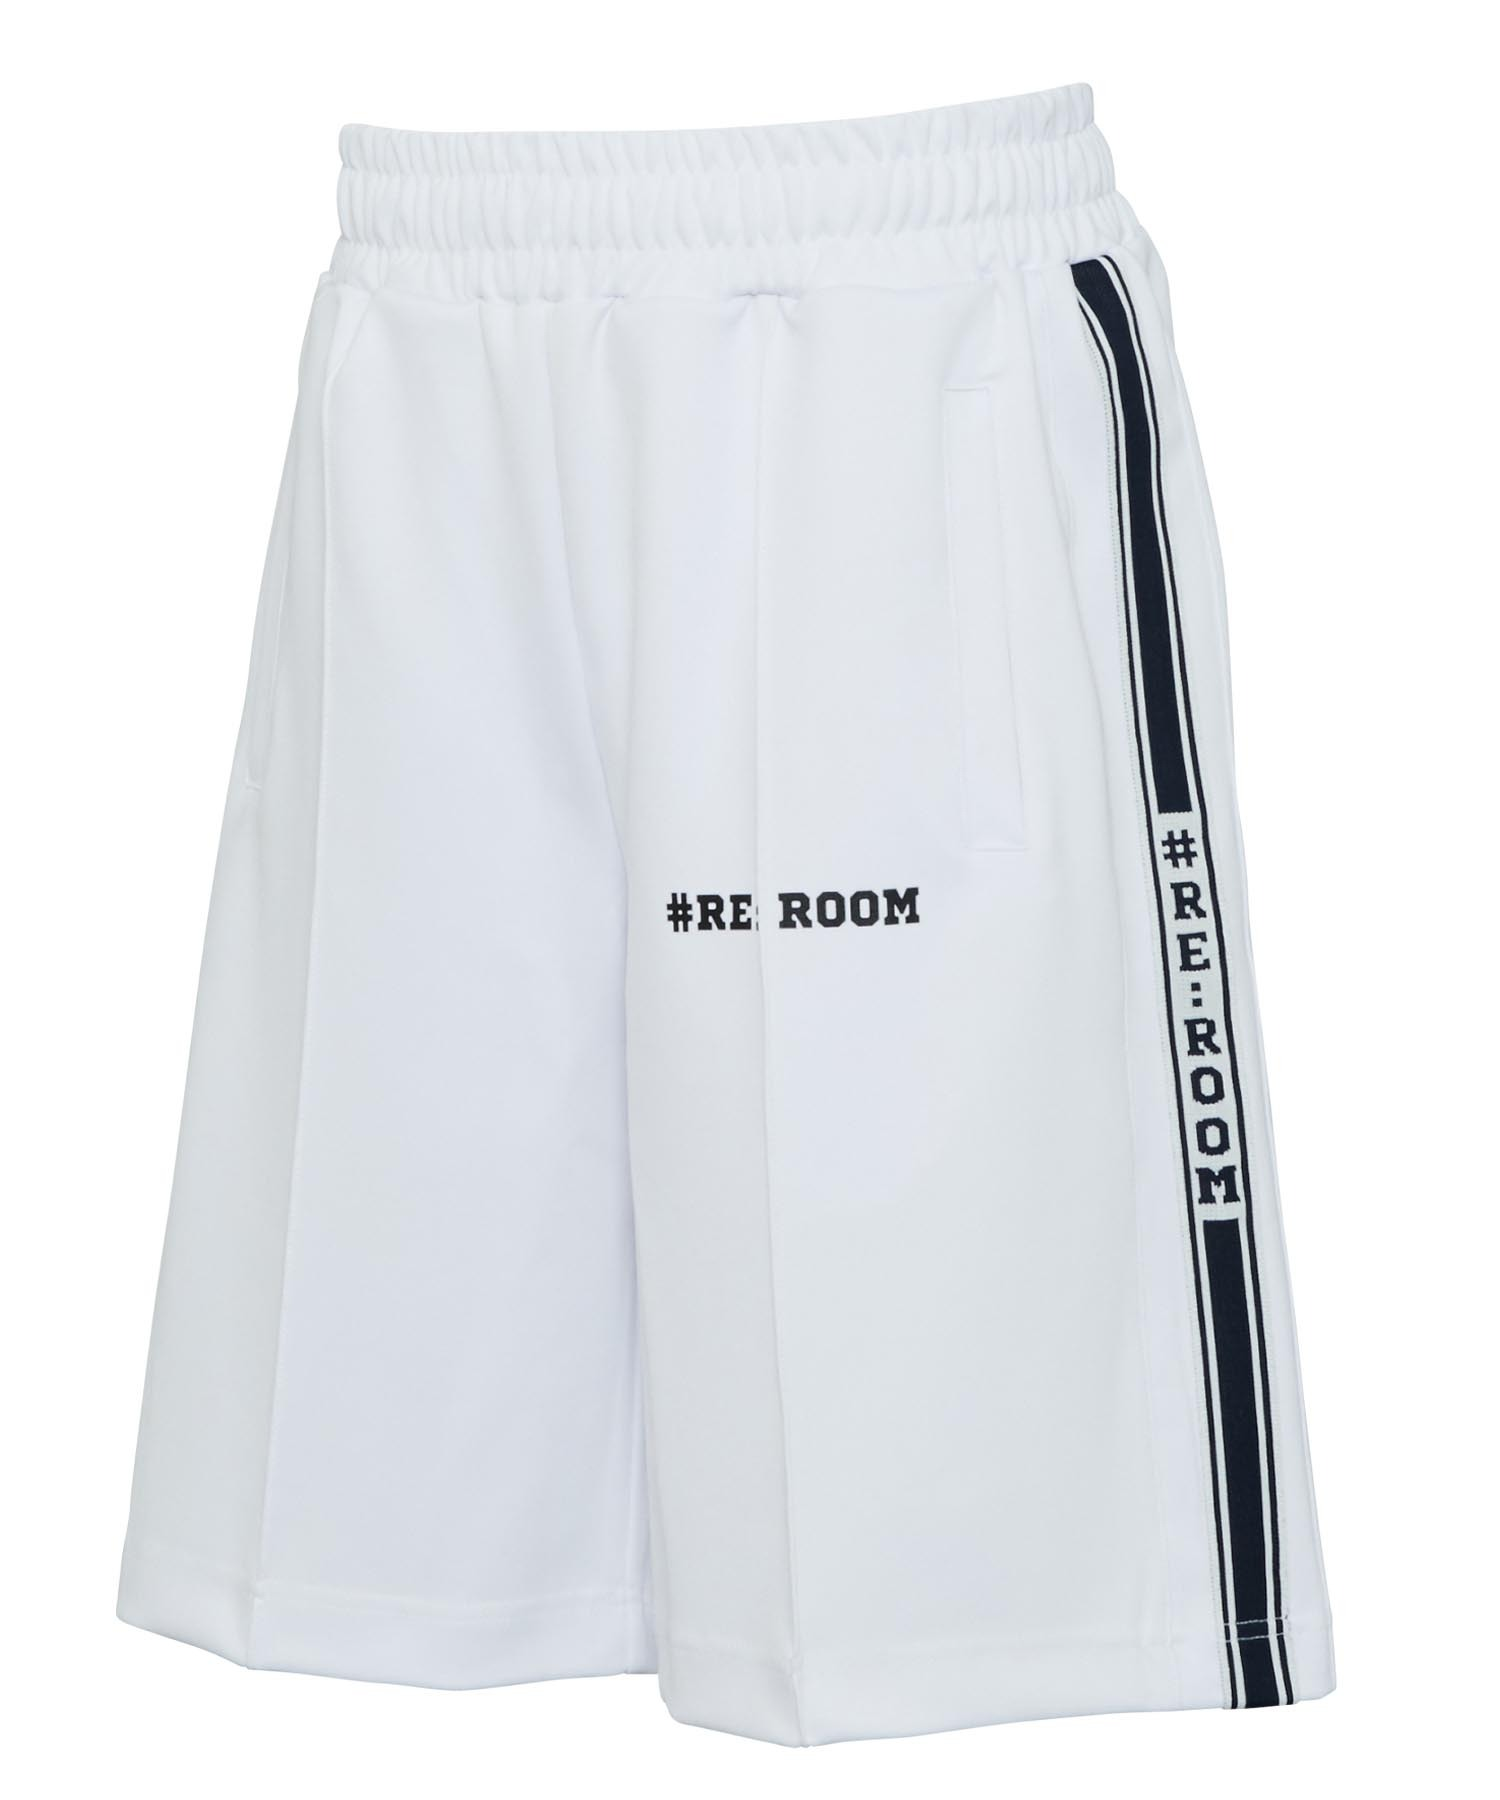 SIDE LINE BIG SHORTS[REP076]